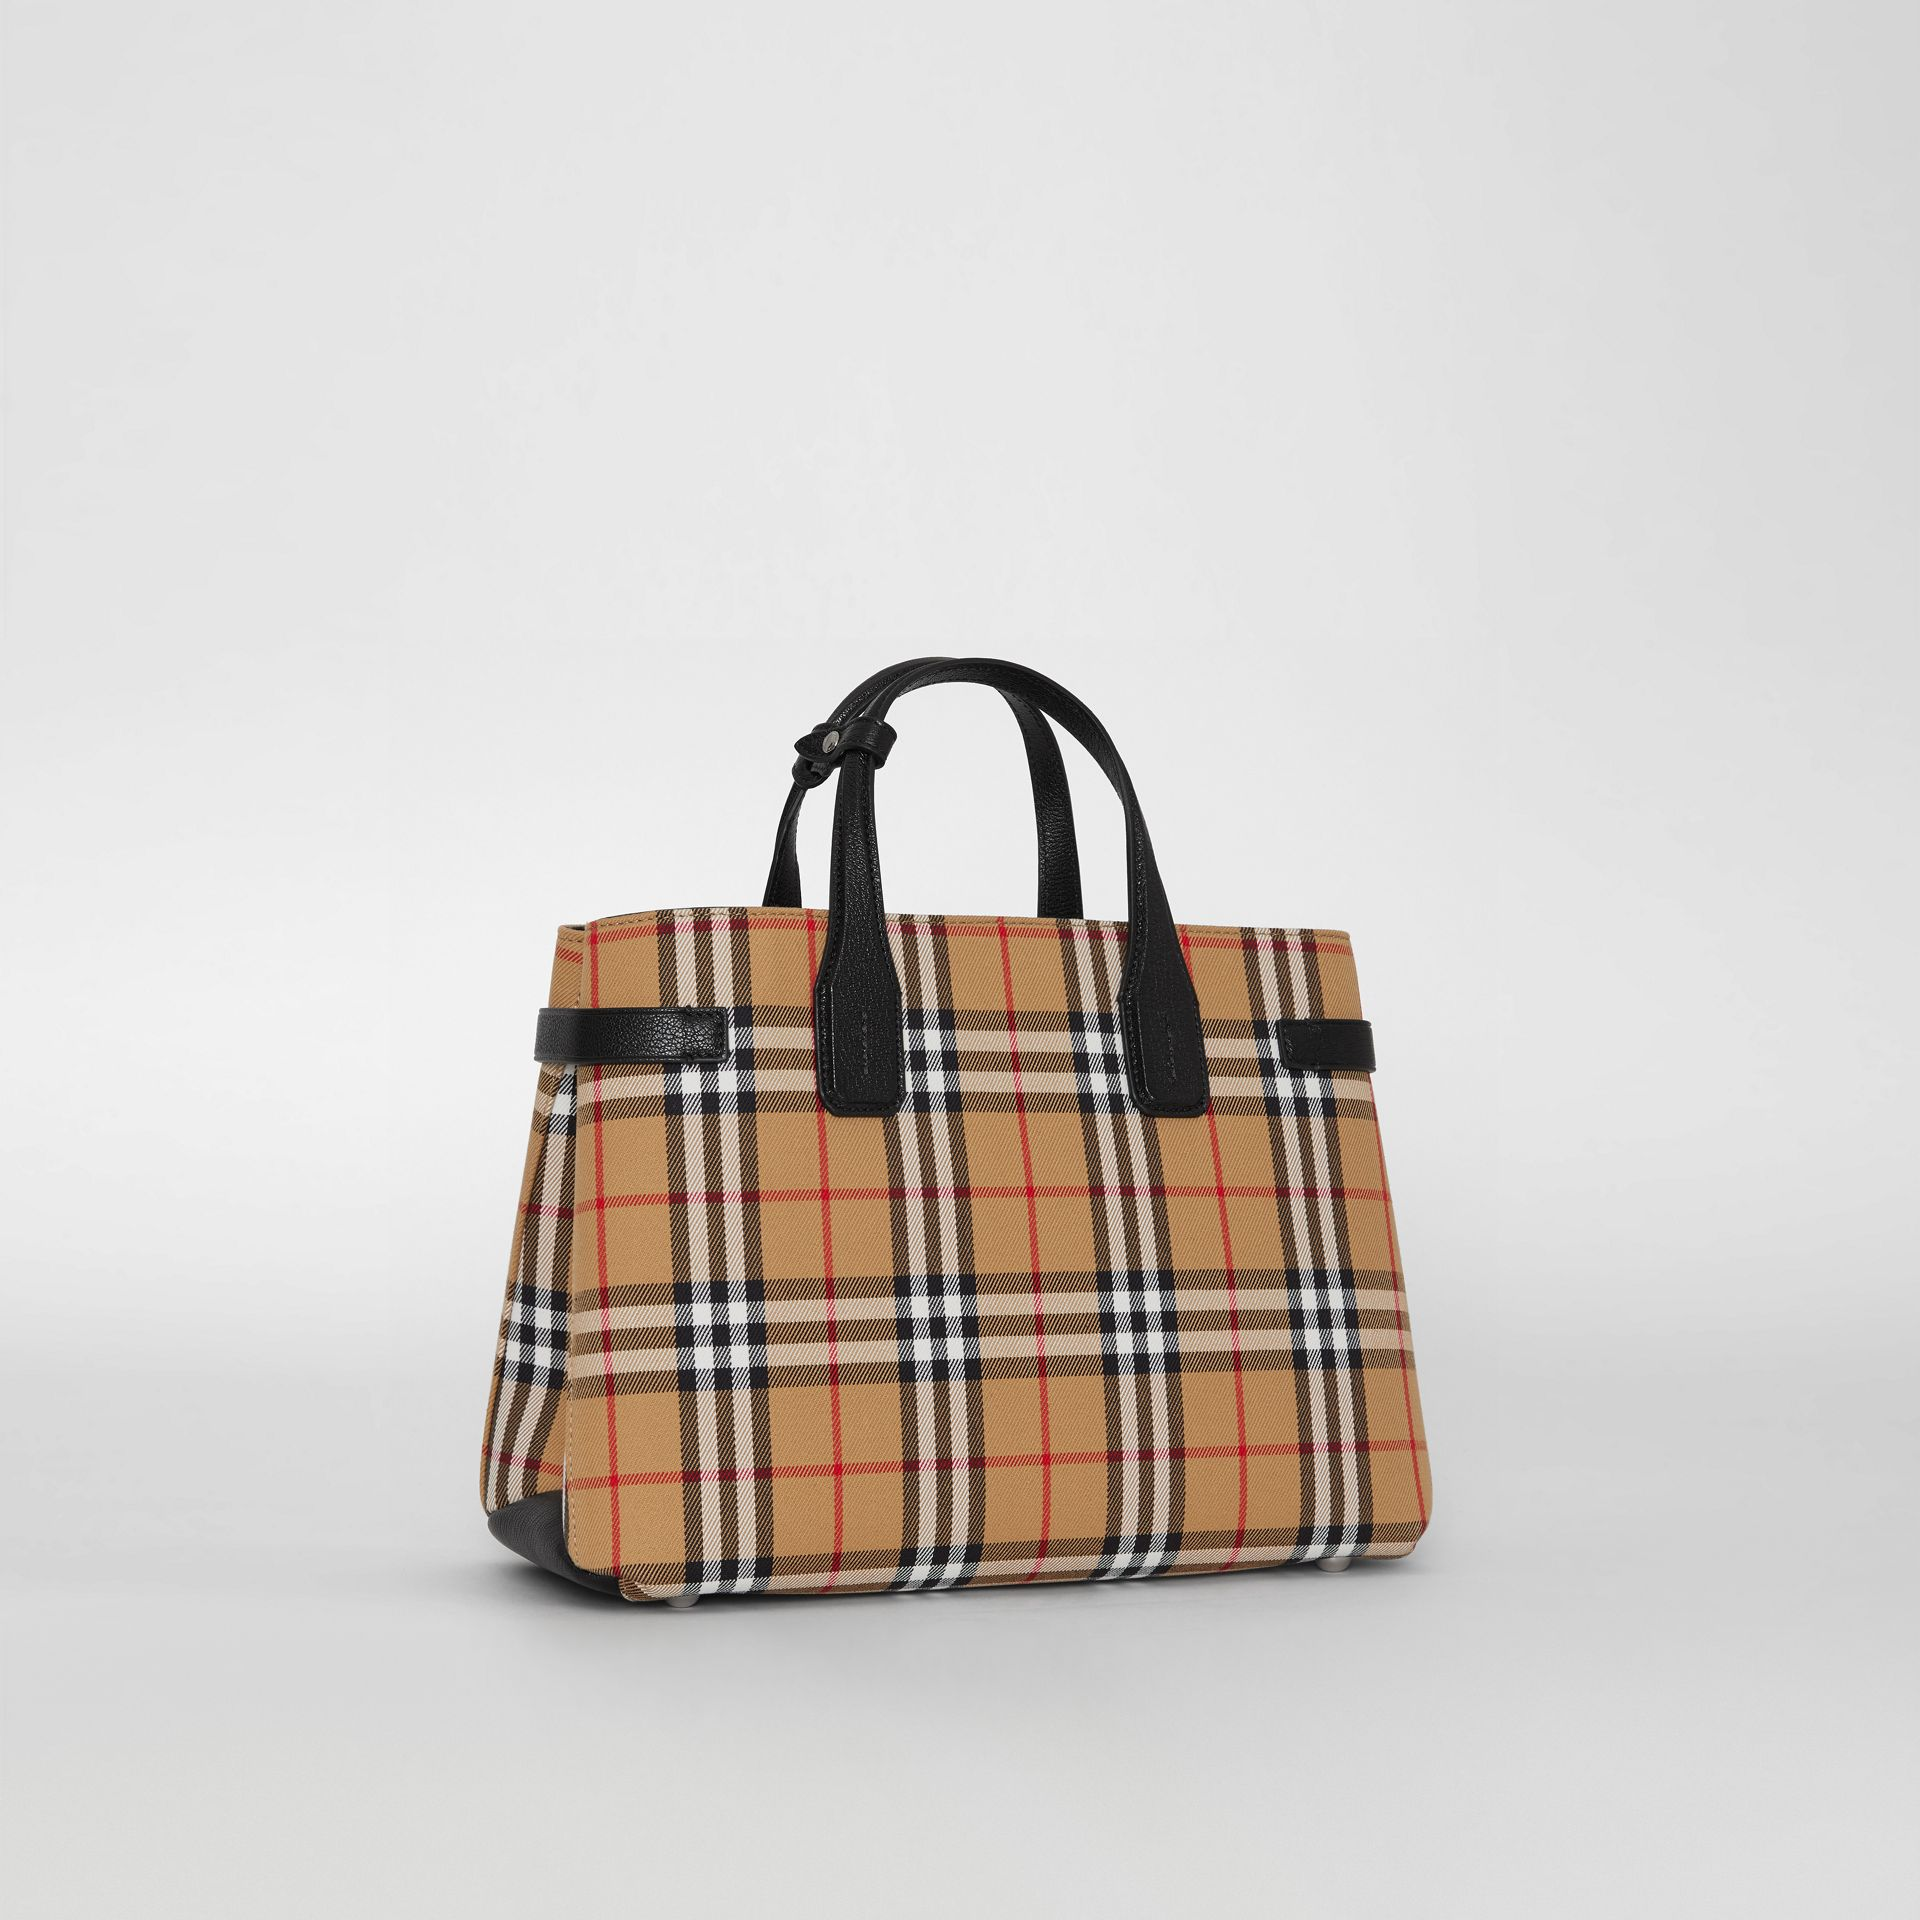 Sac The Banner moyen en cuir et Vintage check (Noir) - Femme | Burberry Canada - photo de la galerie 6